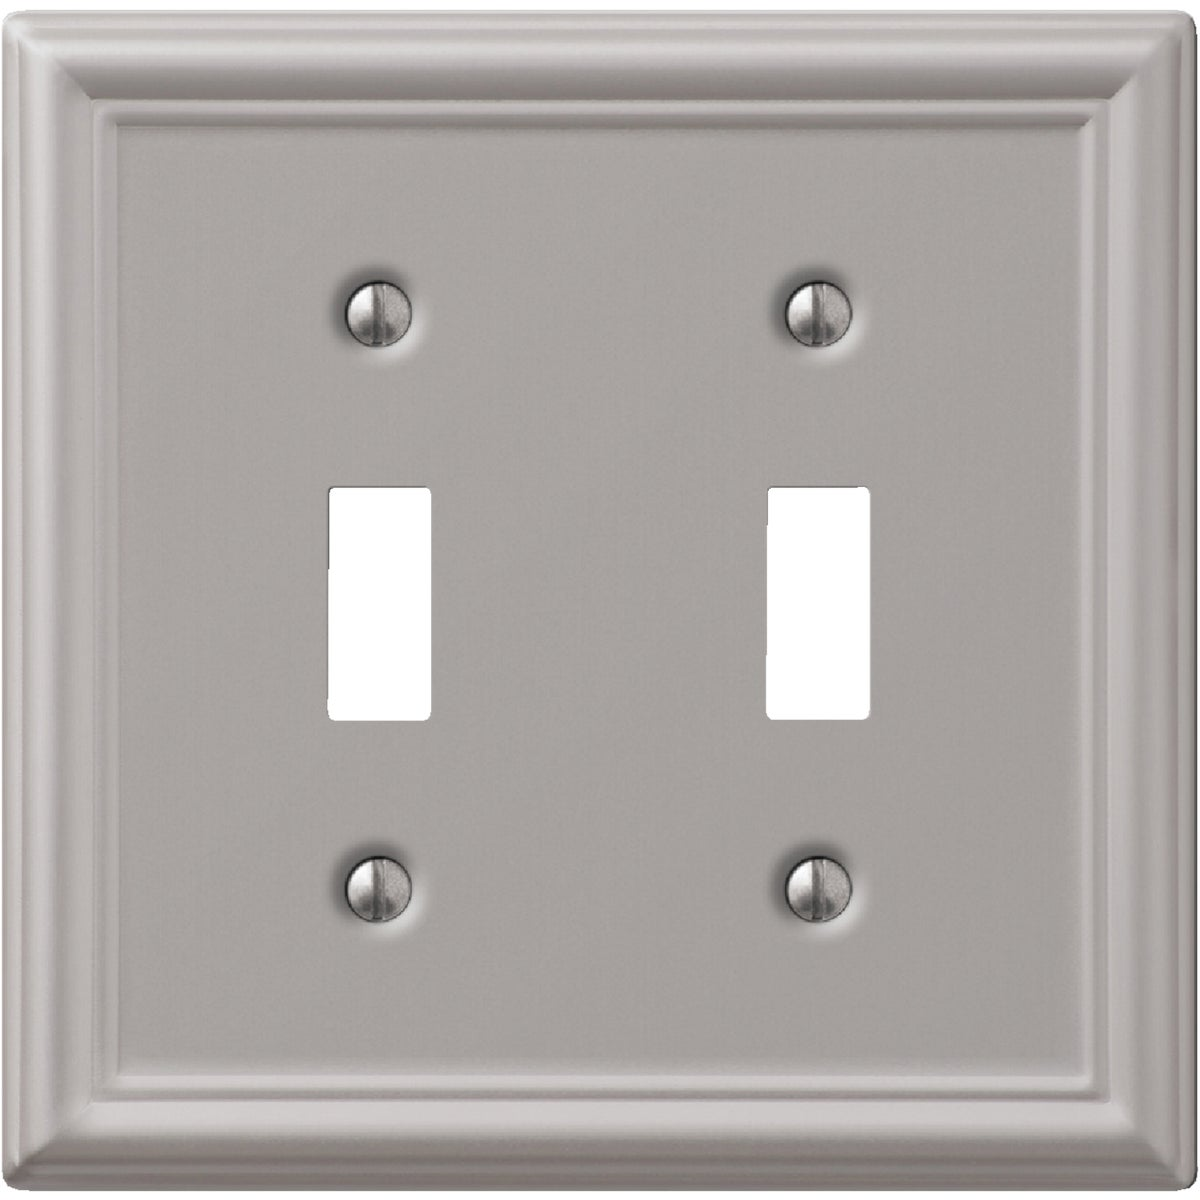 2 TGL BN WALLPLATE - 9LBN102 by Jackson Deerfield Mf